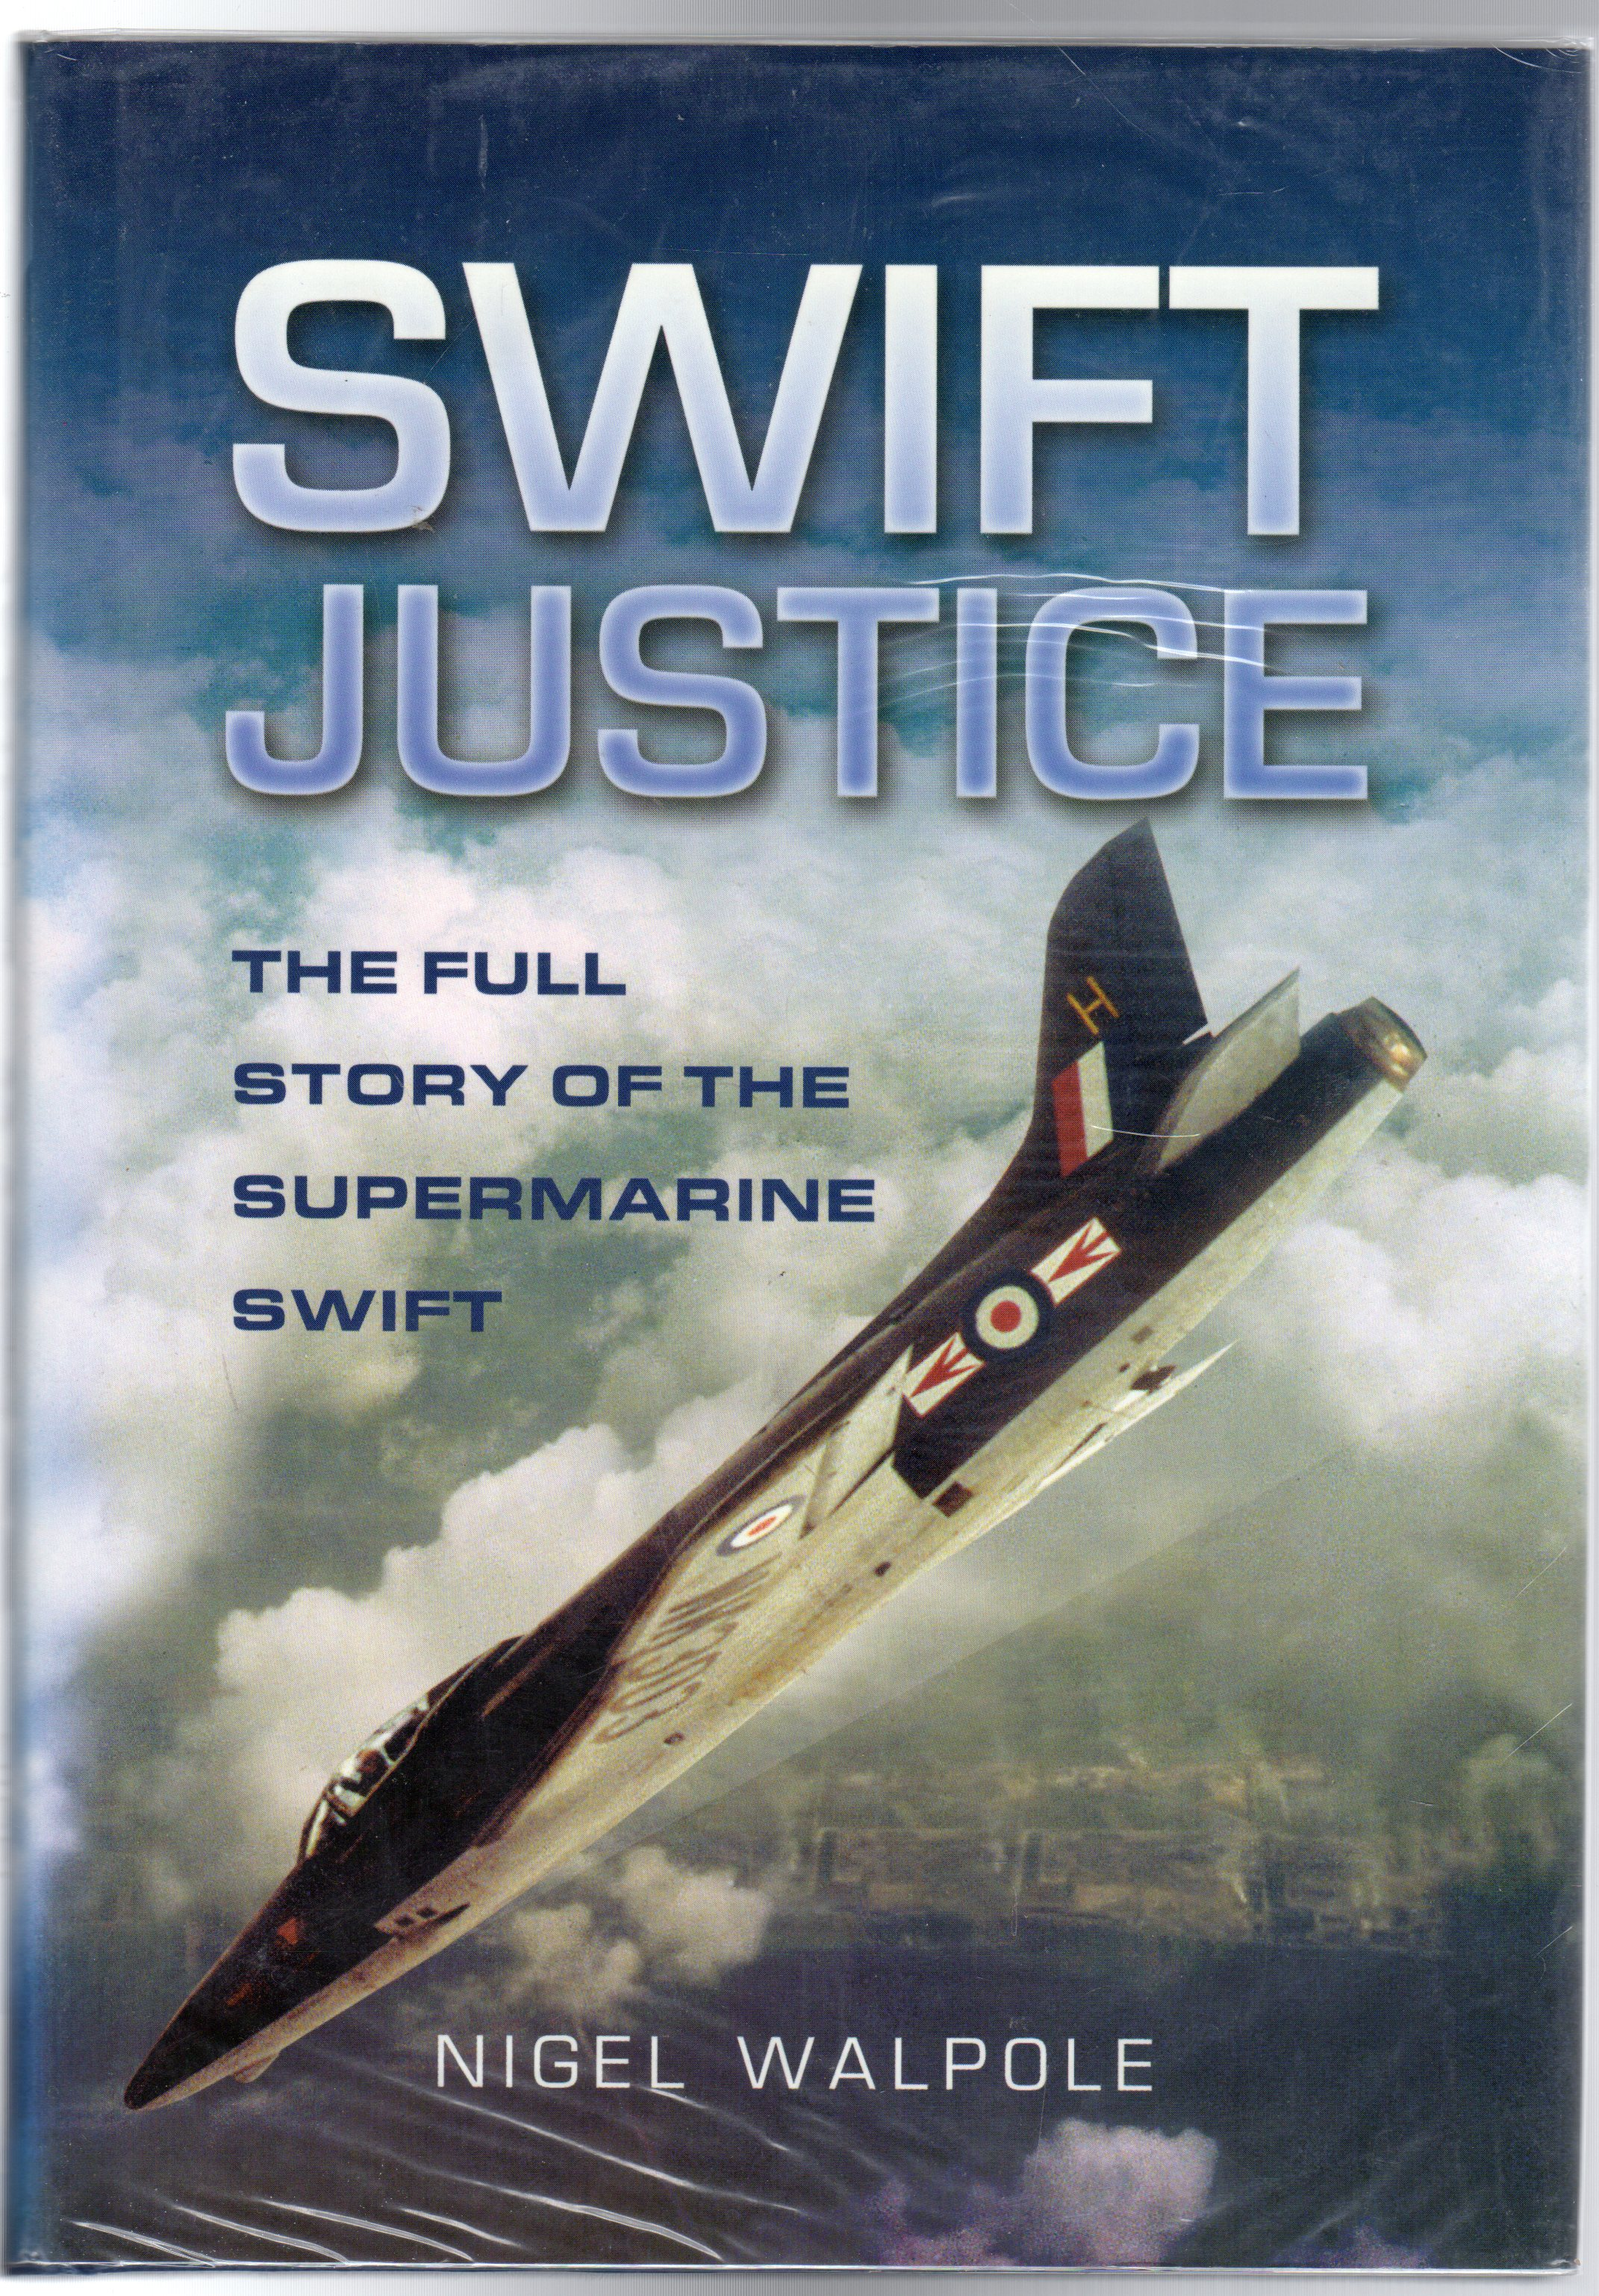 Image for Swift Justice: The Full Story of the Supermarine Swift